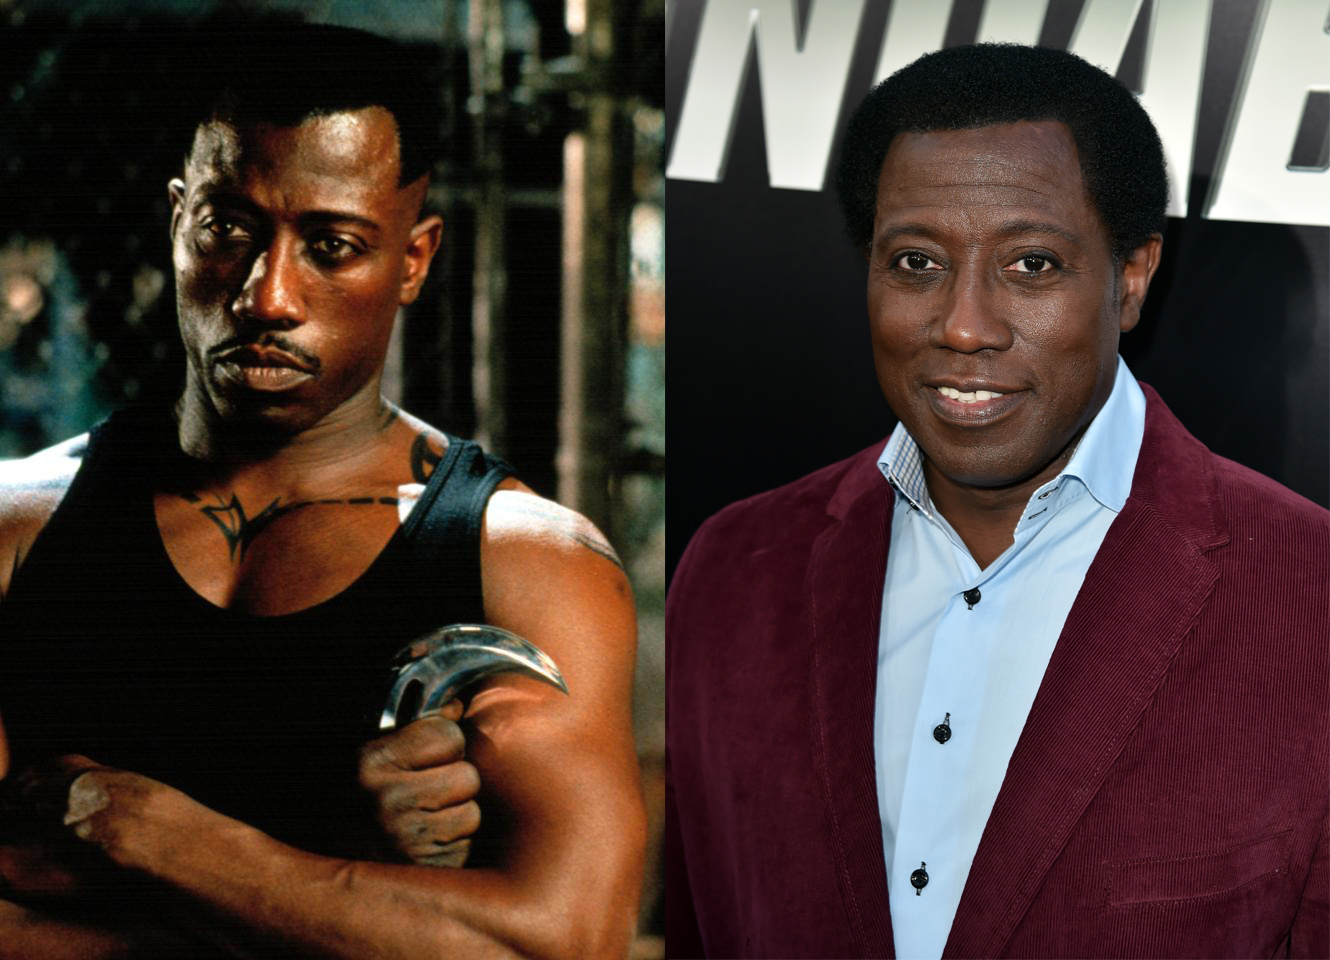 From 1998 to 2004, Wesley Snipes played the lead character in the three Blade movies. He's done little sense, but surged back on the scene this year in The Expendables 3, playing on his tough guy persona.